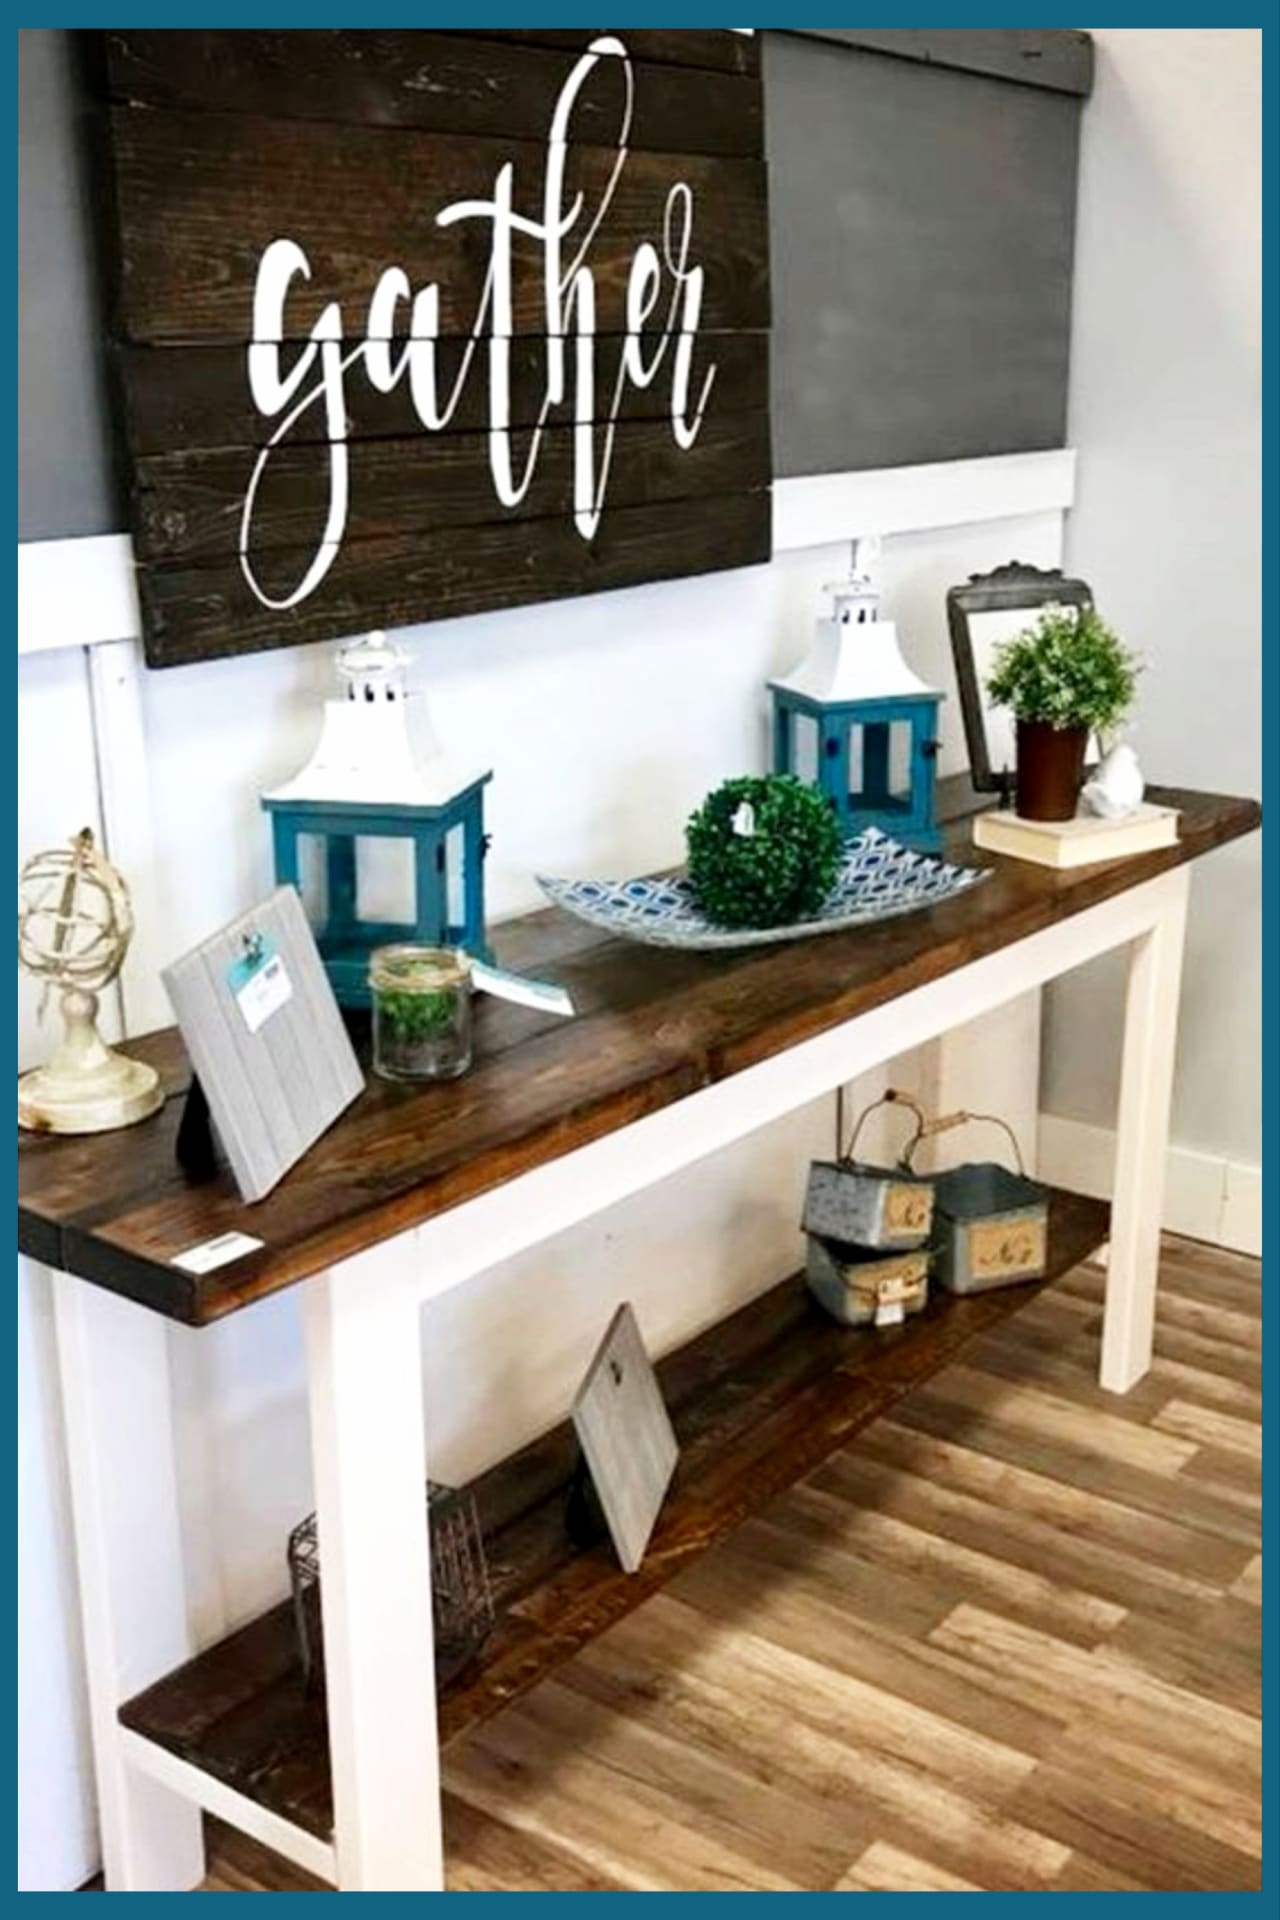 Foyer decorating ideas - small farmhouse foyer with entryway table, pallet gather wall decor and farmhouse style